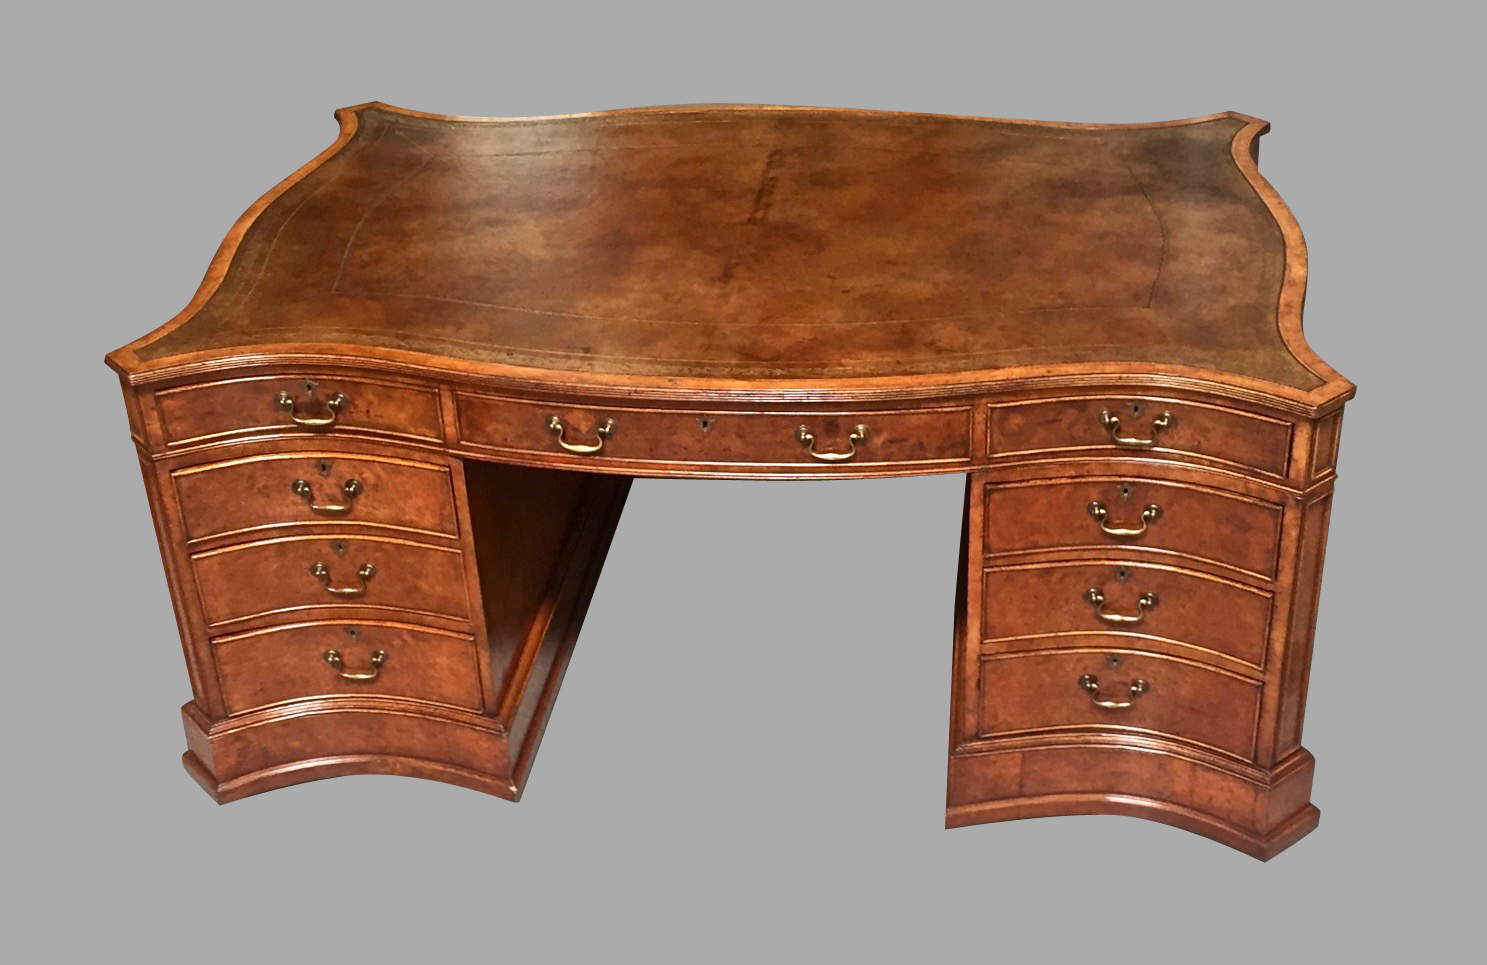 Large Burl Elm Serpentine Partners Desk with Gilt-Tooled Leather Top | DANIEL STEIN Antiques San Francisco CA